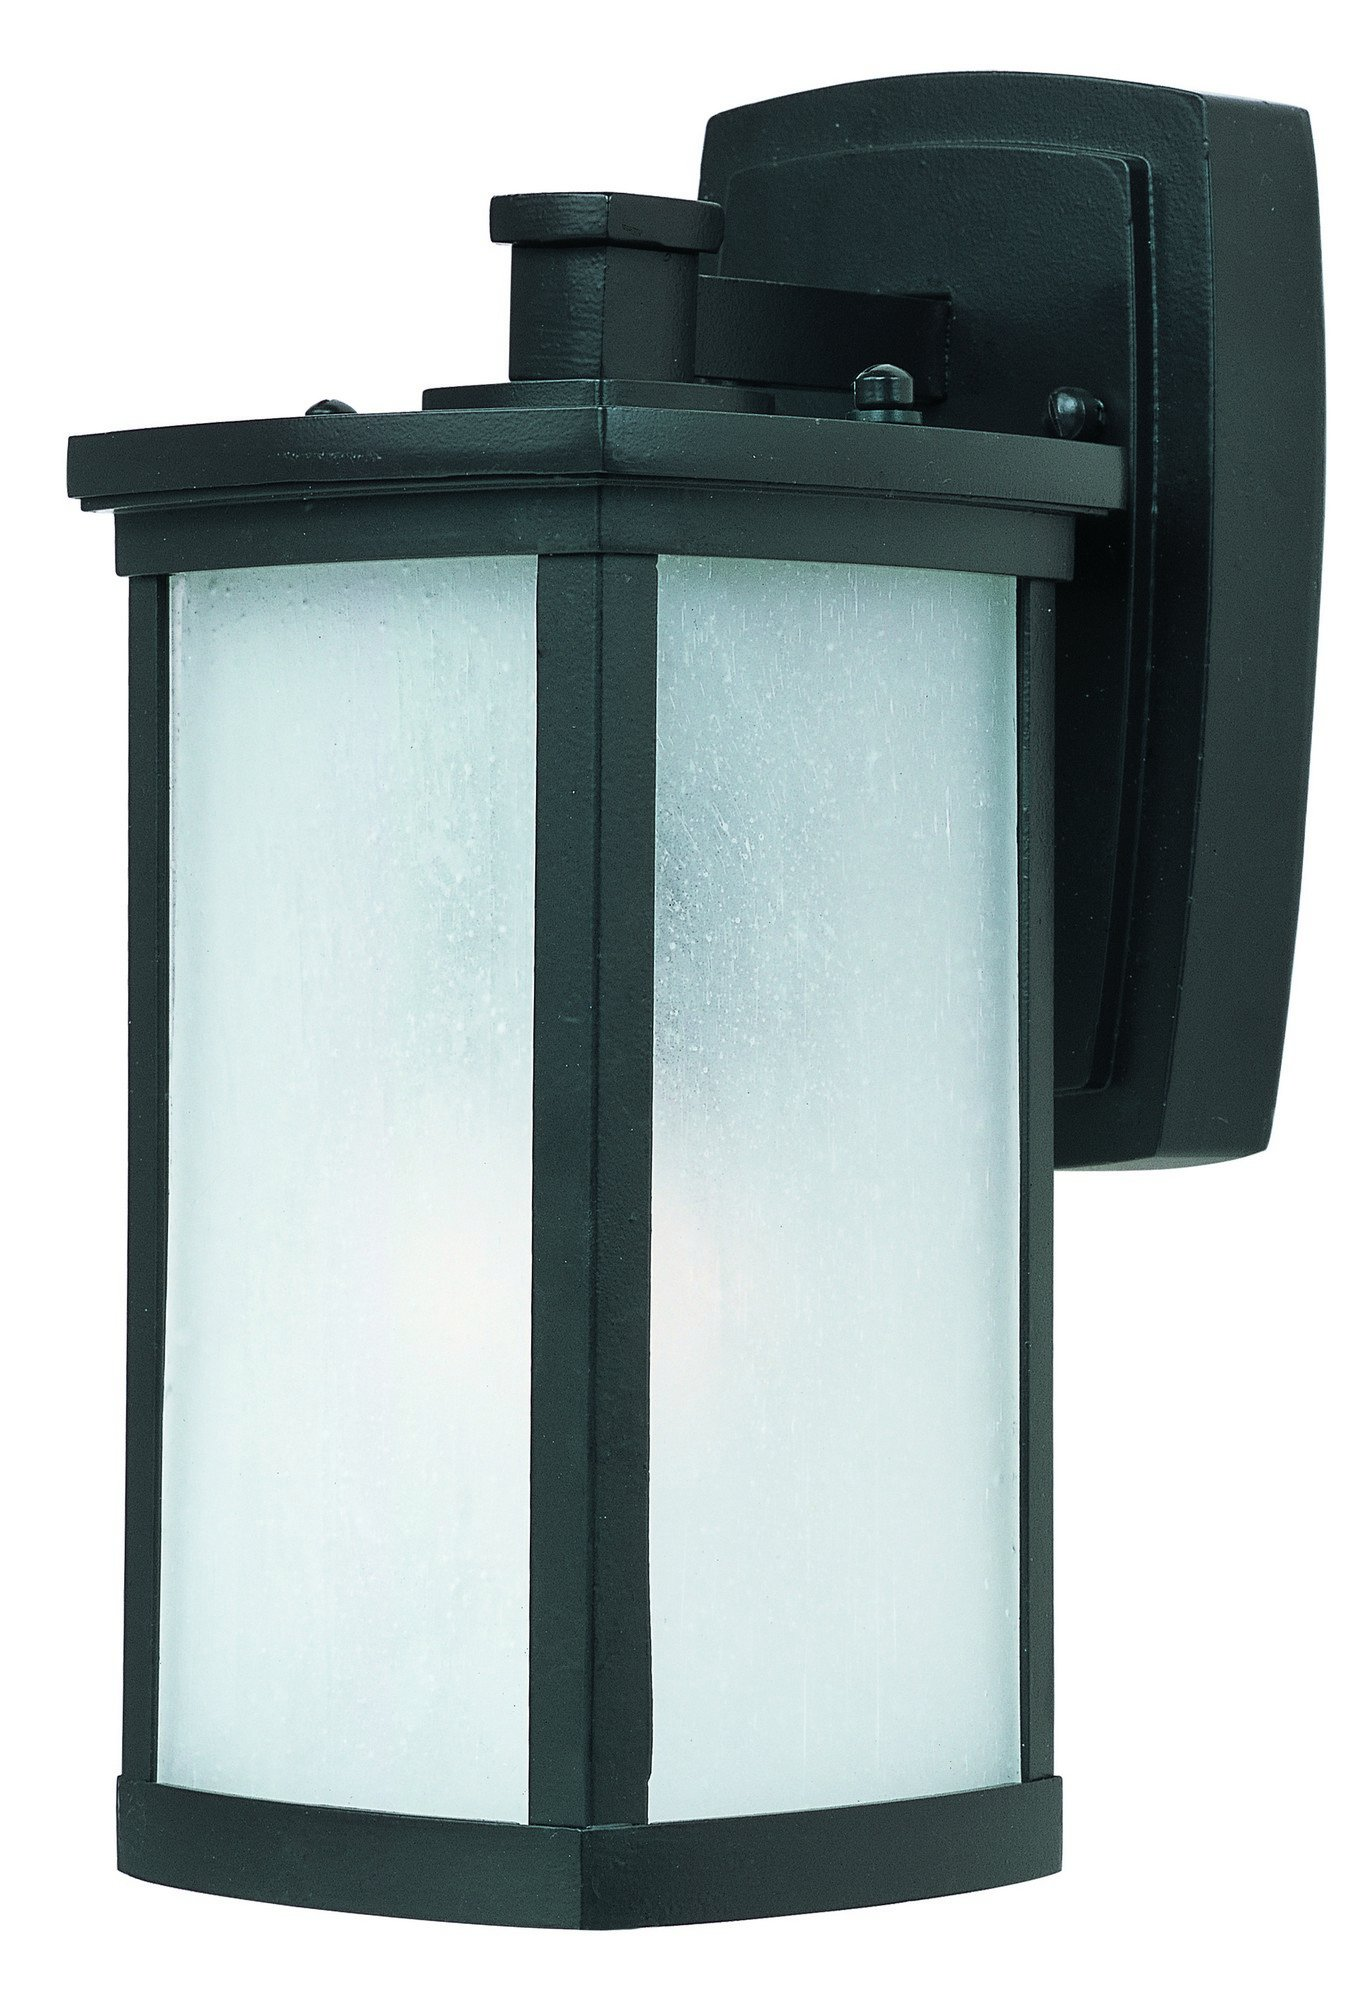 Maxim 3252FSBZ Terrace 1-Light Small Outdoor Wall, Bronze Finish, Frosted Seedy Glass, MB Incandescent Incandescent Bulb , 12W Max., Damp Safety Rating, Standard Triac/Lutron or Leviton Dimmable, Shade Material, 840 Rated Lumens